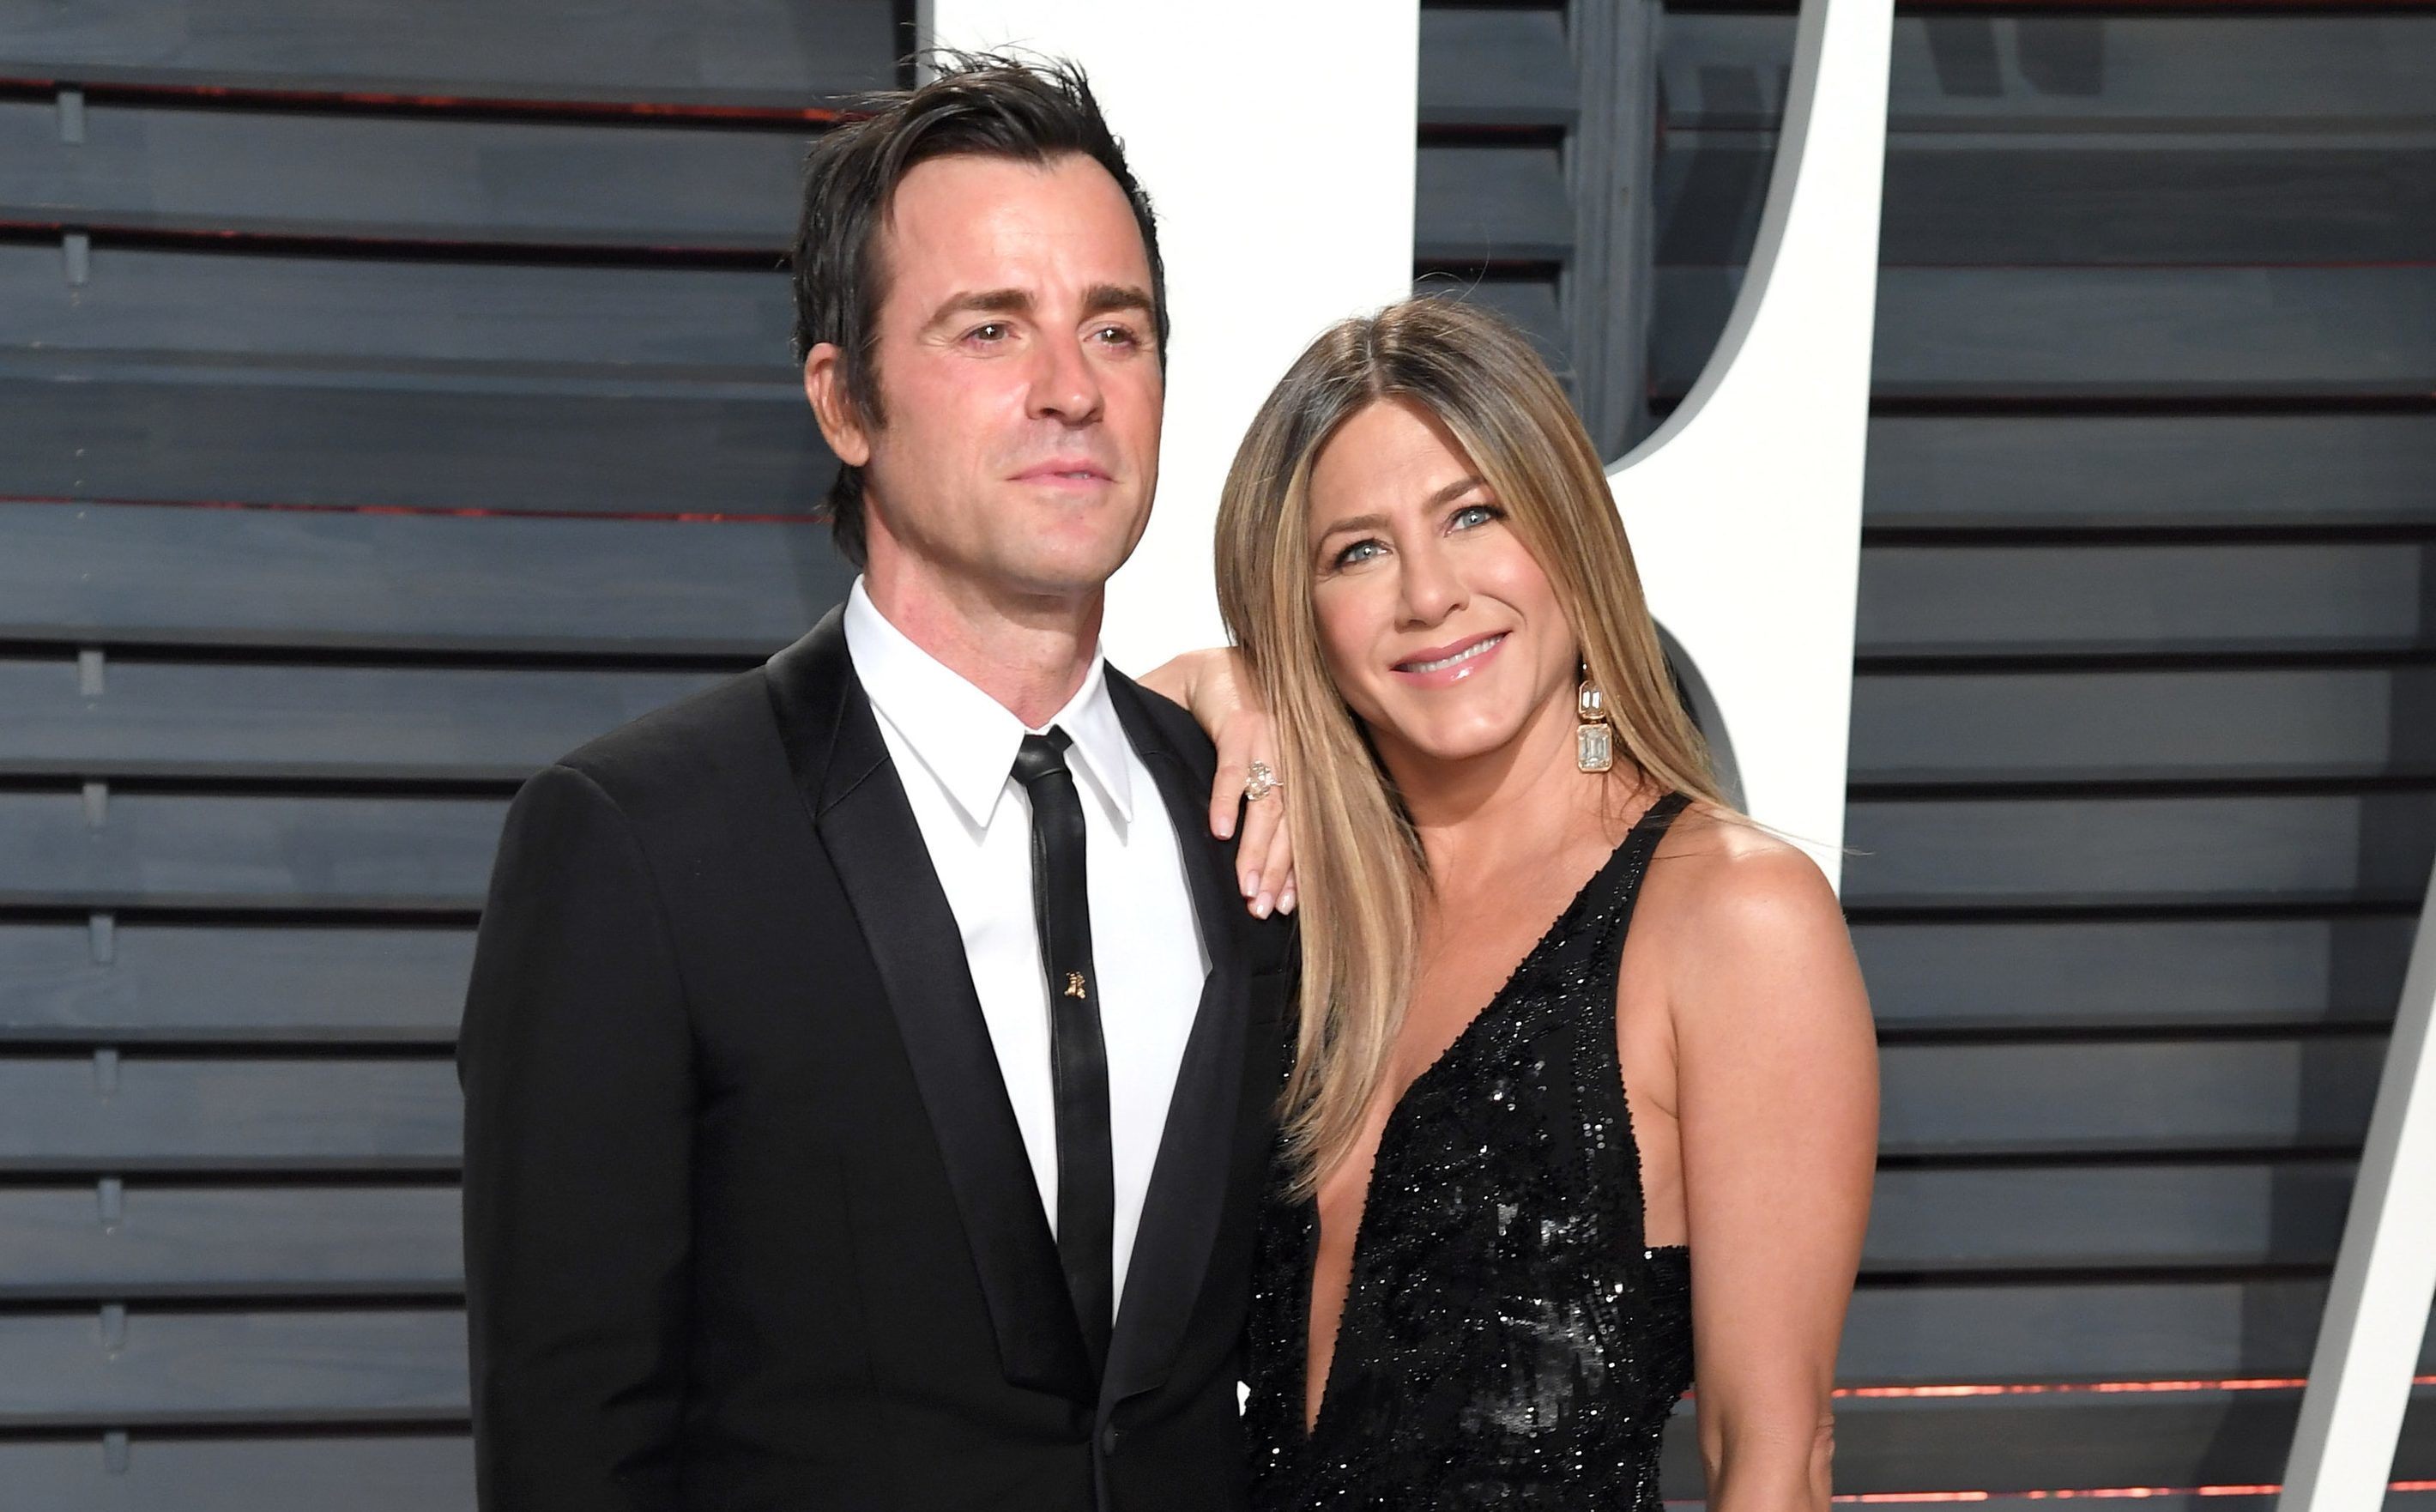 Justin Theroux and Jennifer Aniston have announced they are separating (PA)